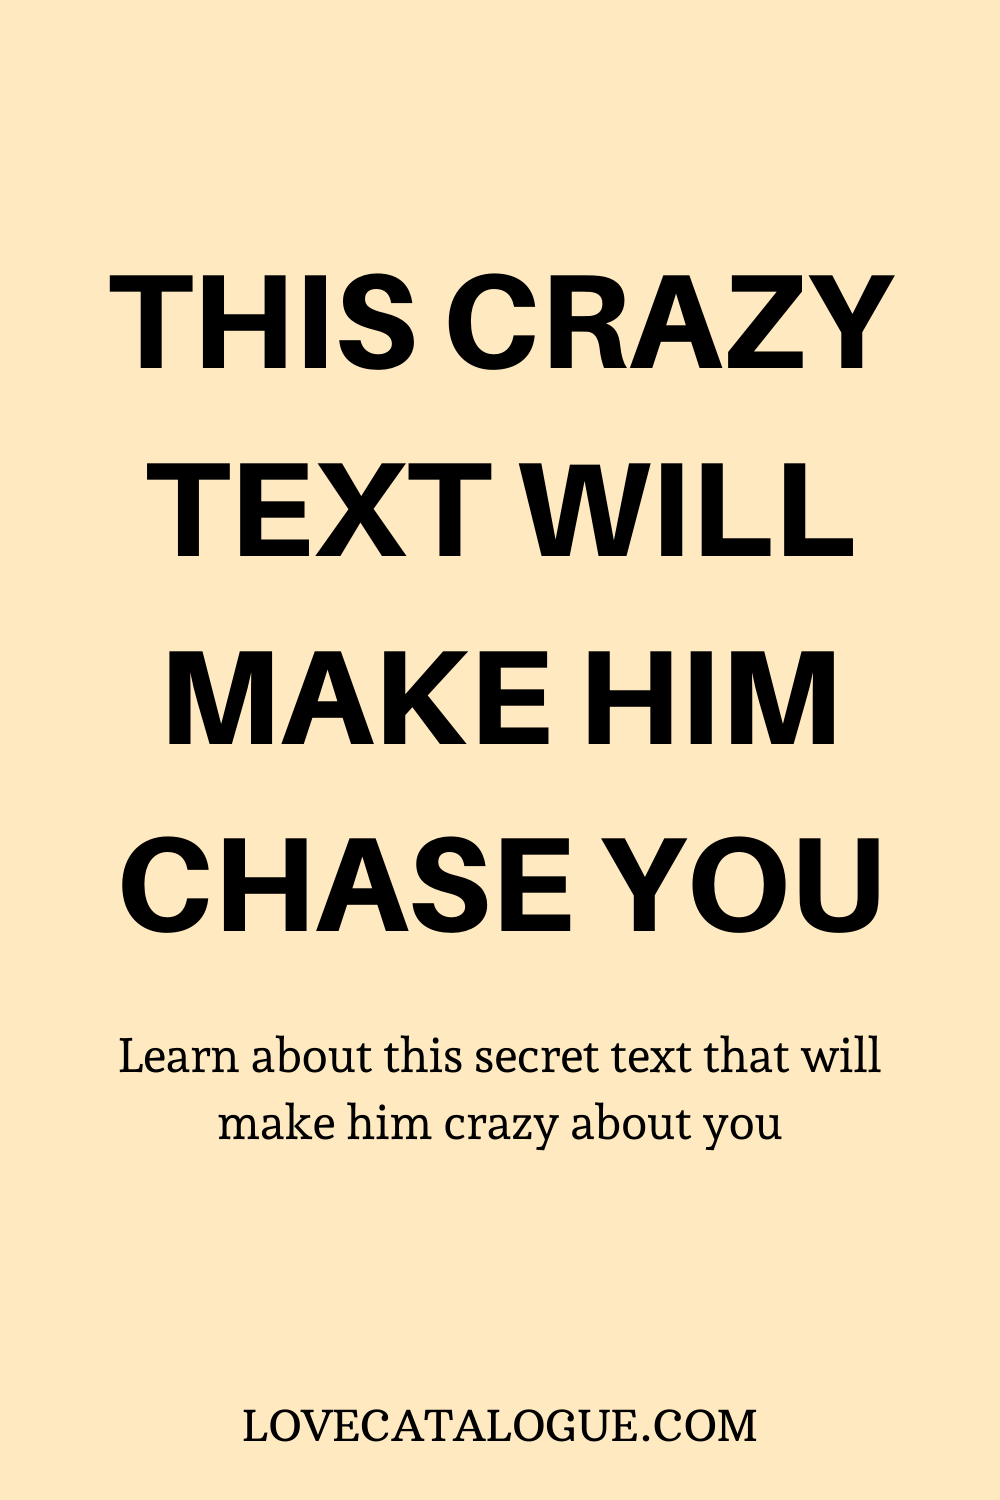 This crazy text will make him chase you